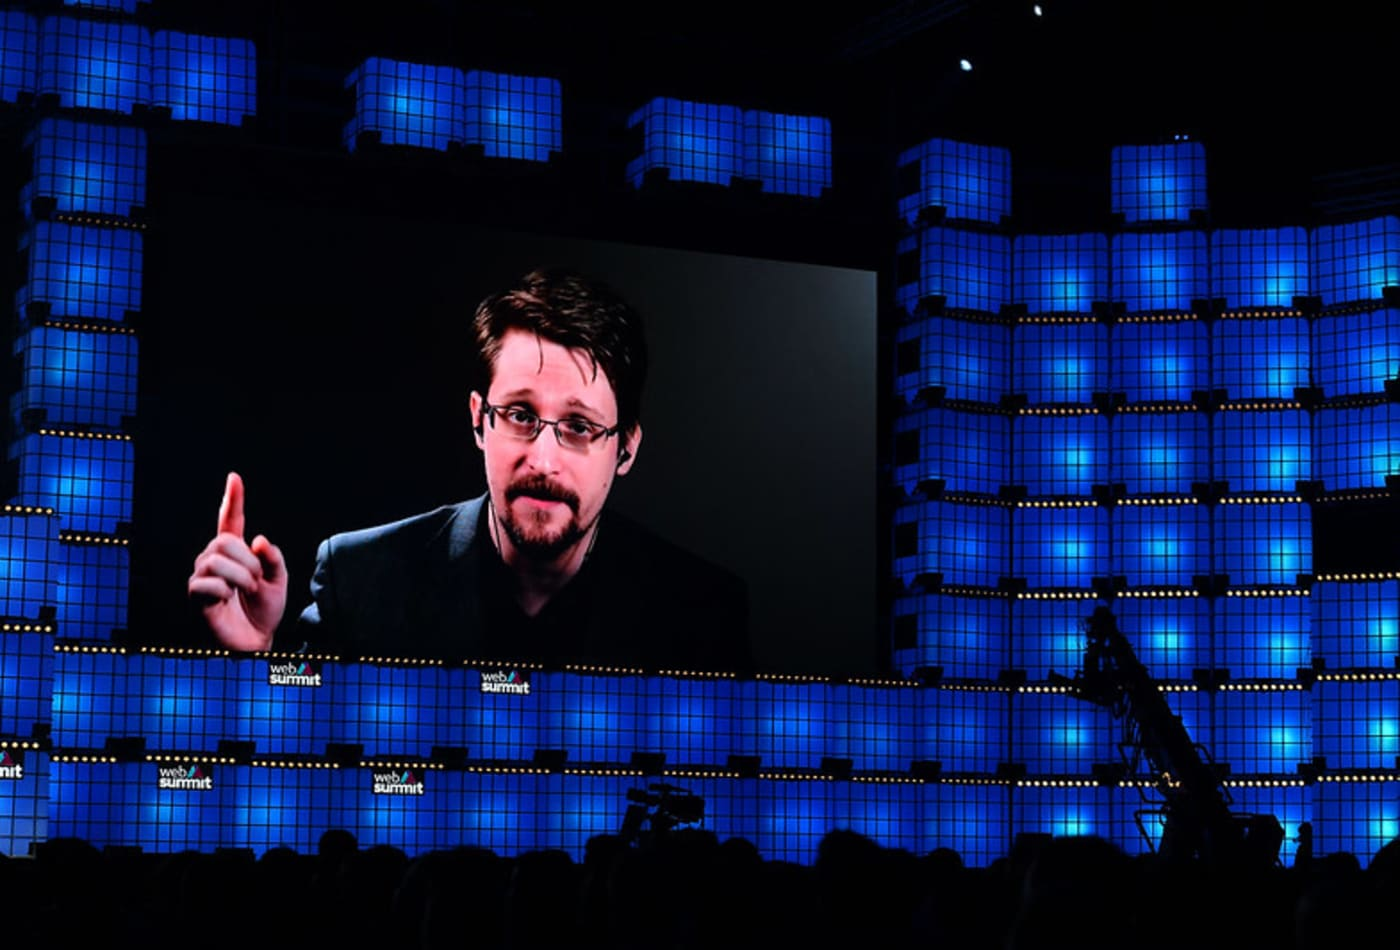 Edward Snowden says 'the most powerful institutions in society have become the least accountable'